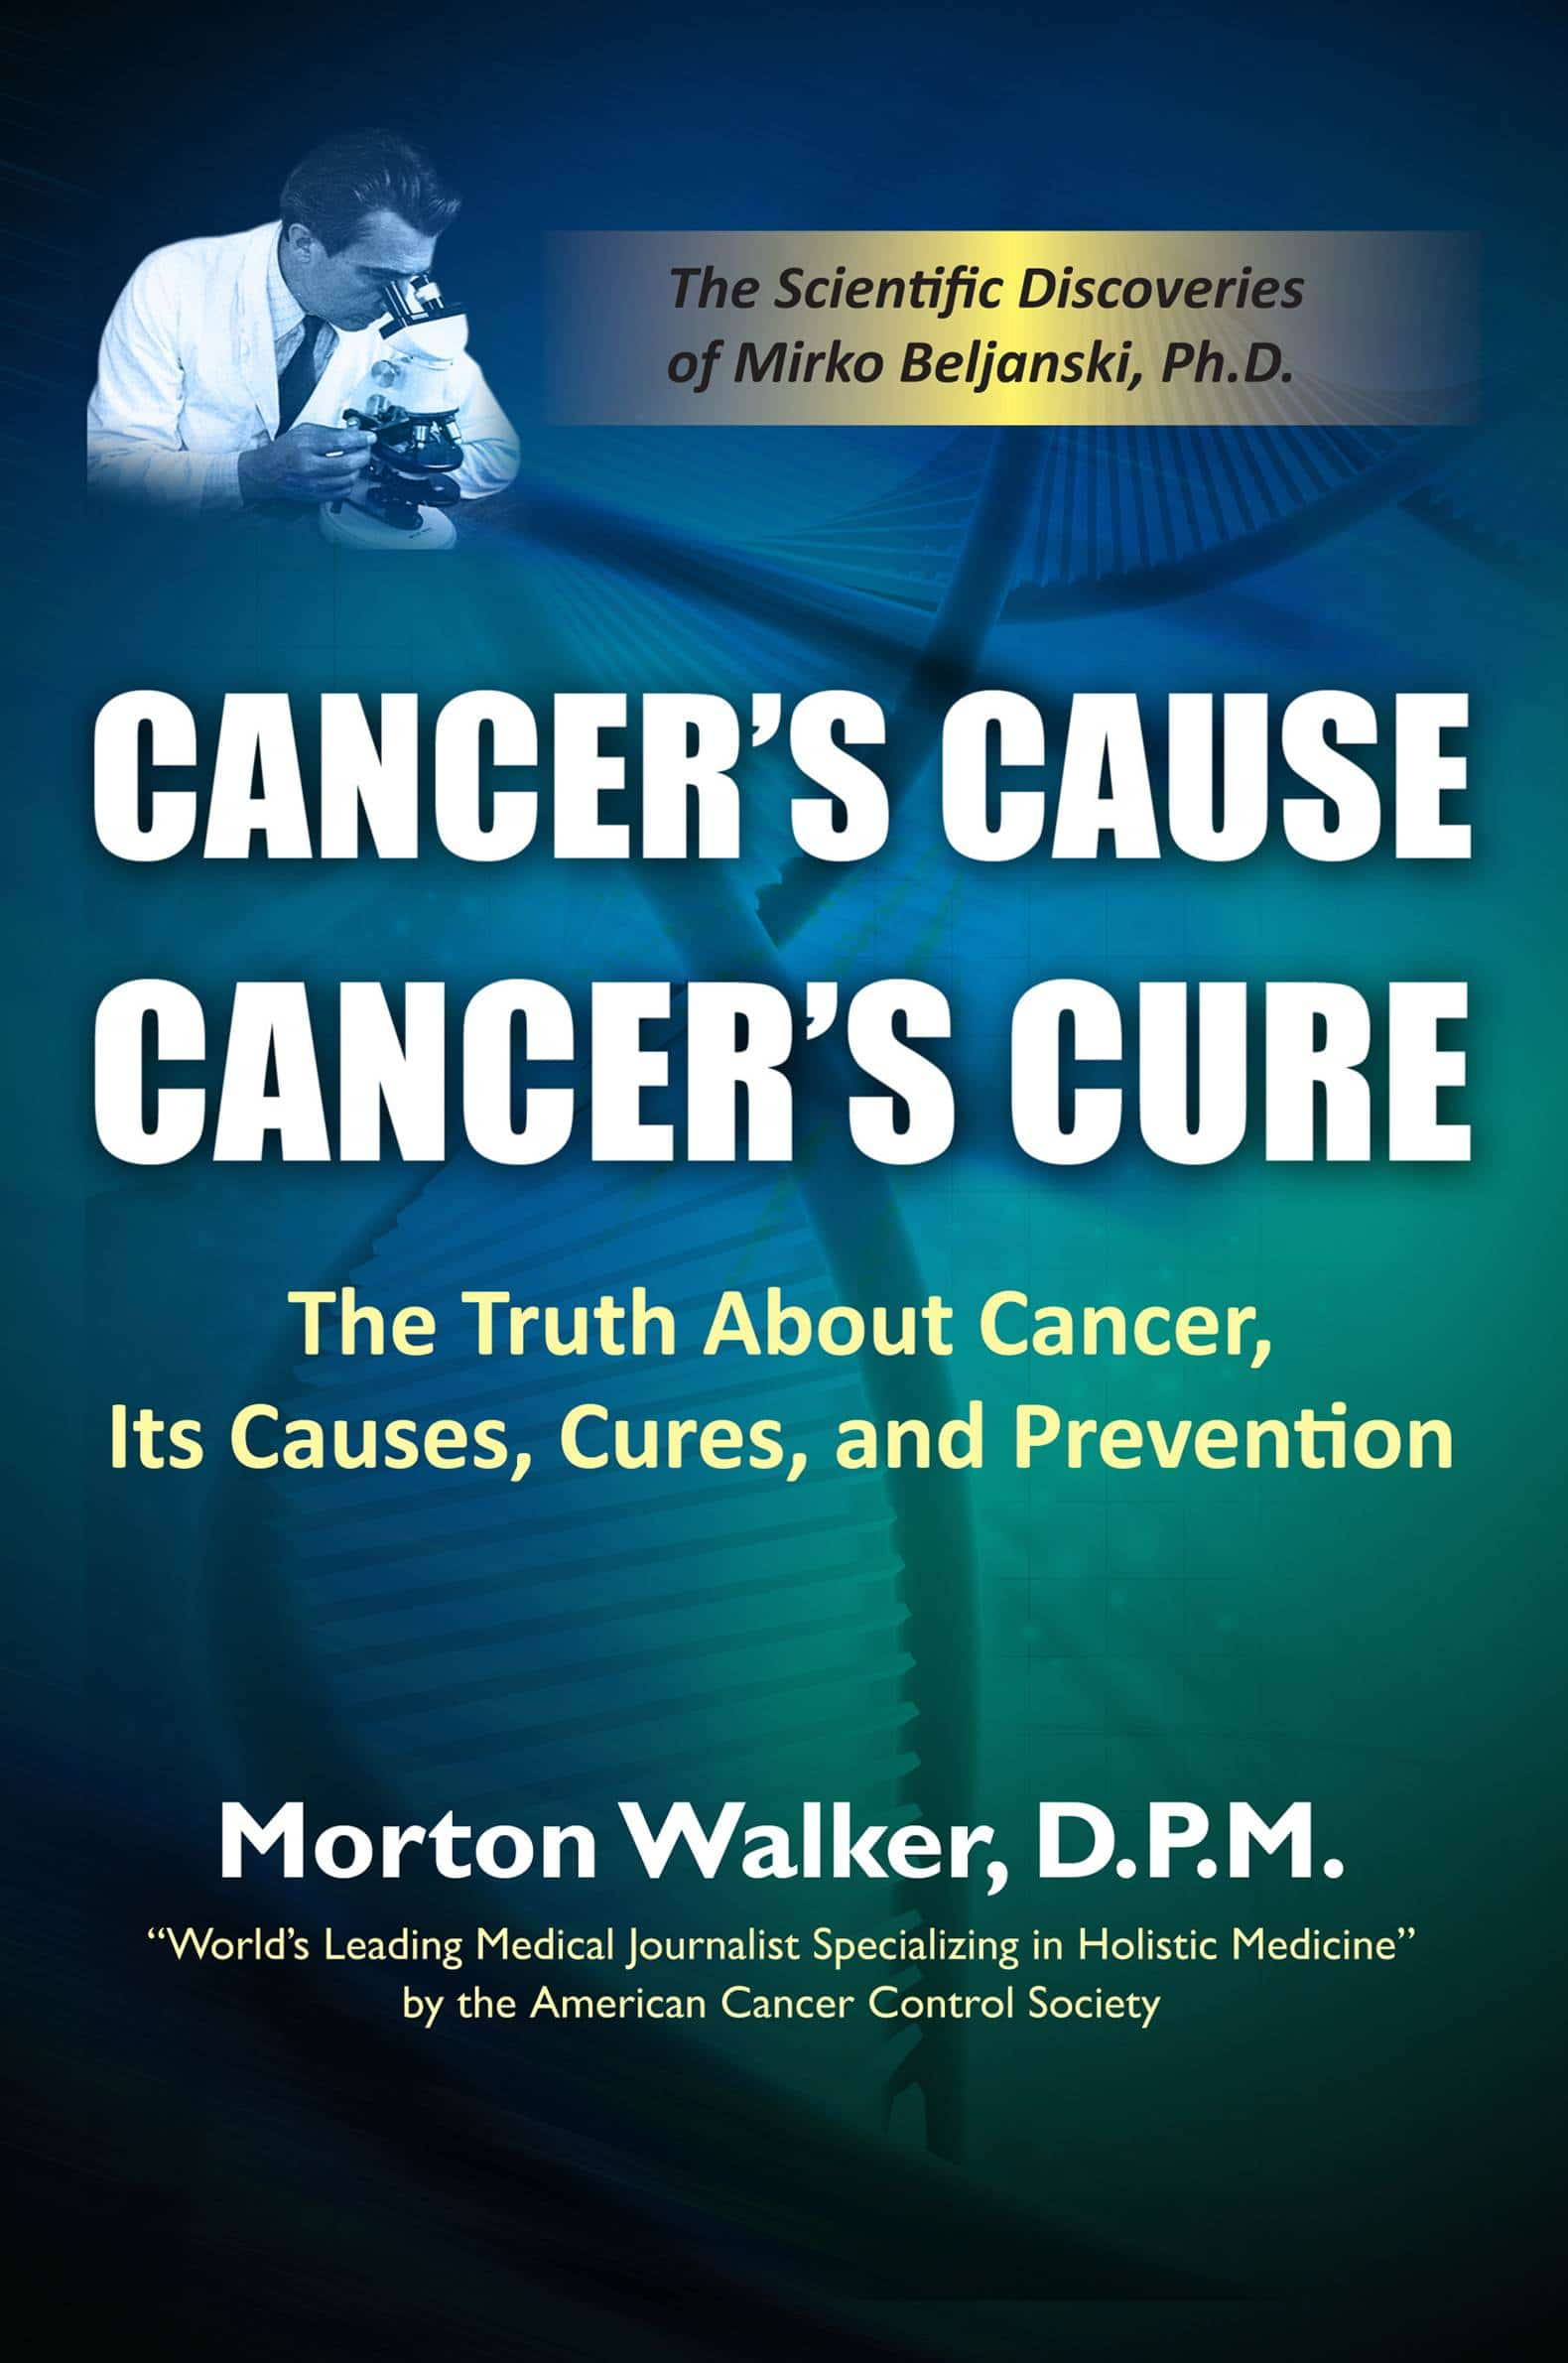 Cancer's Cause Cancer's Cure by M.Walker